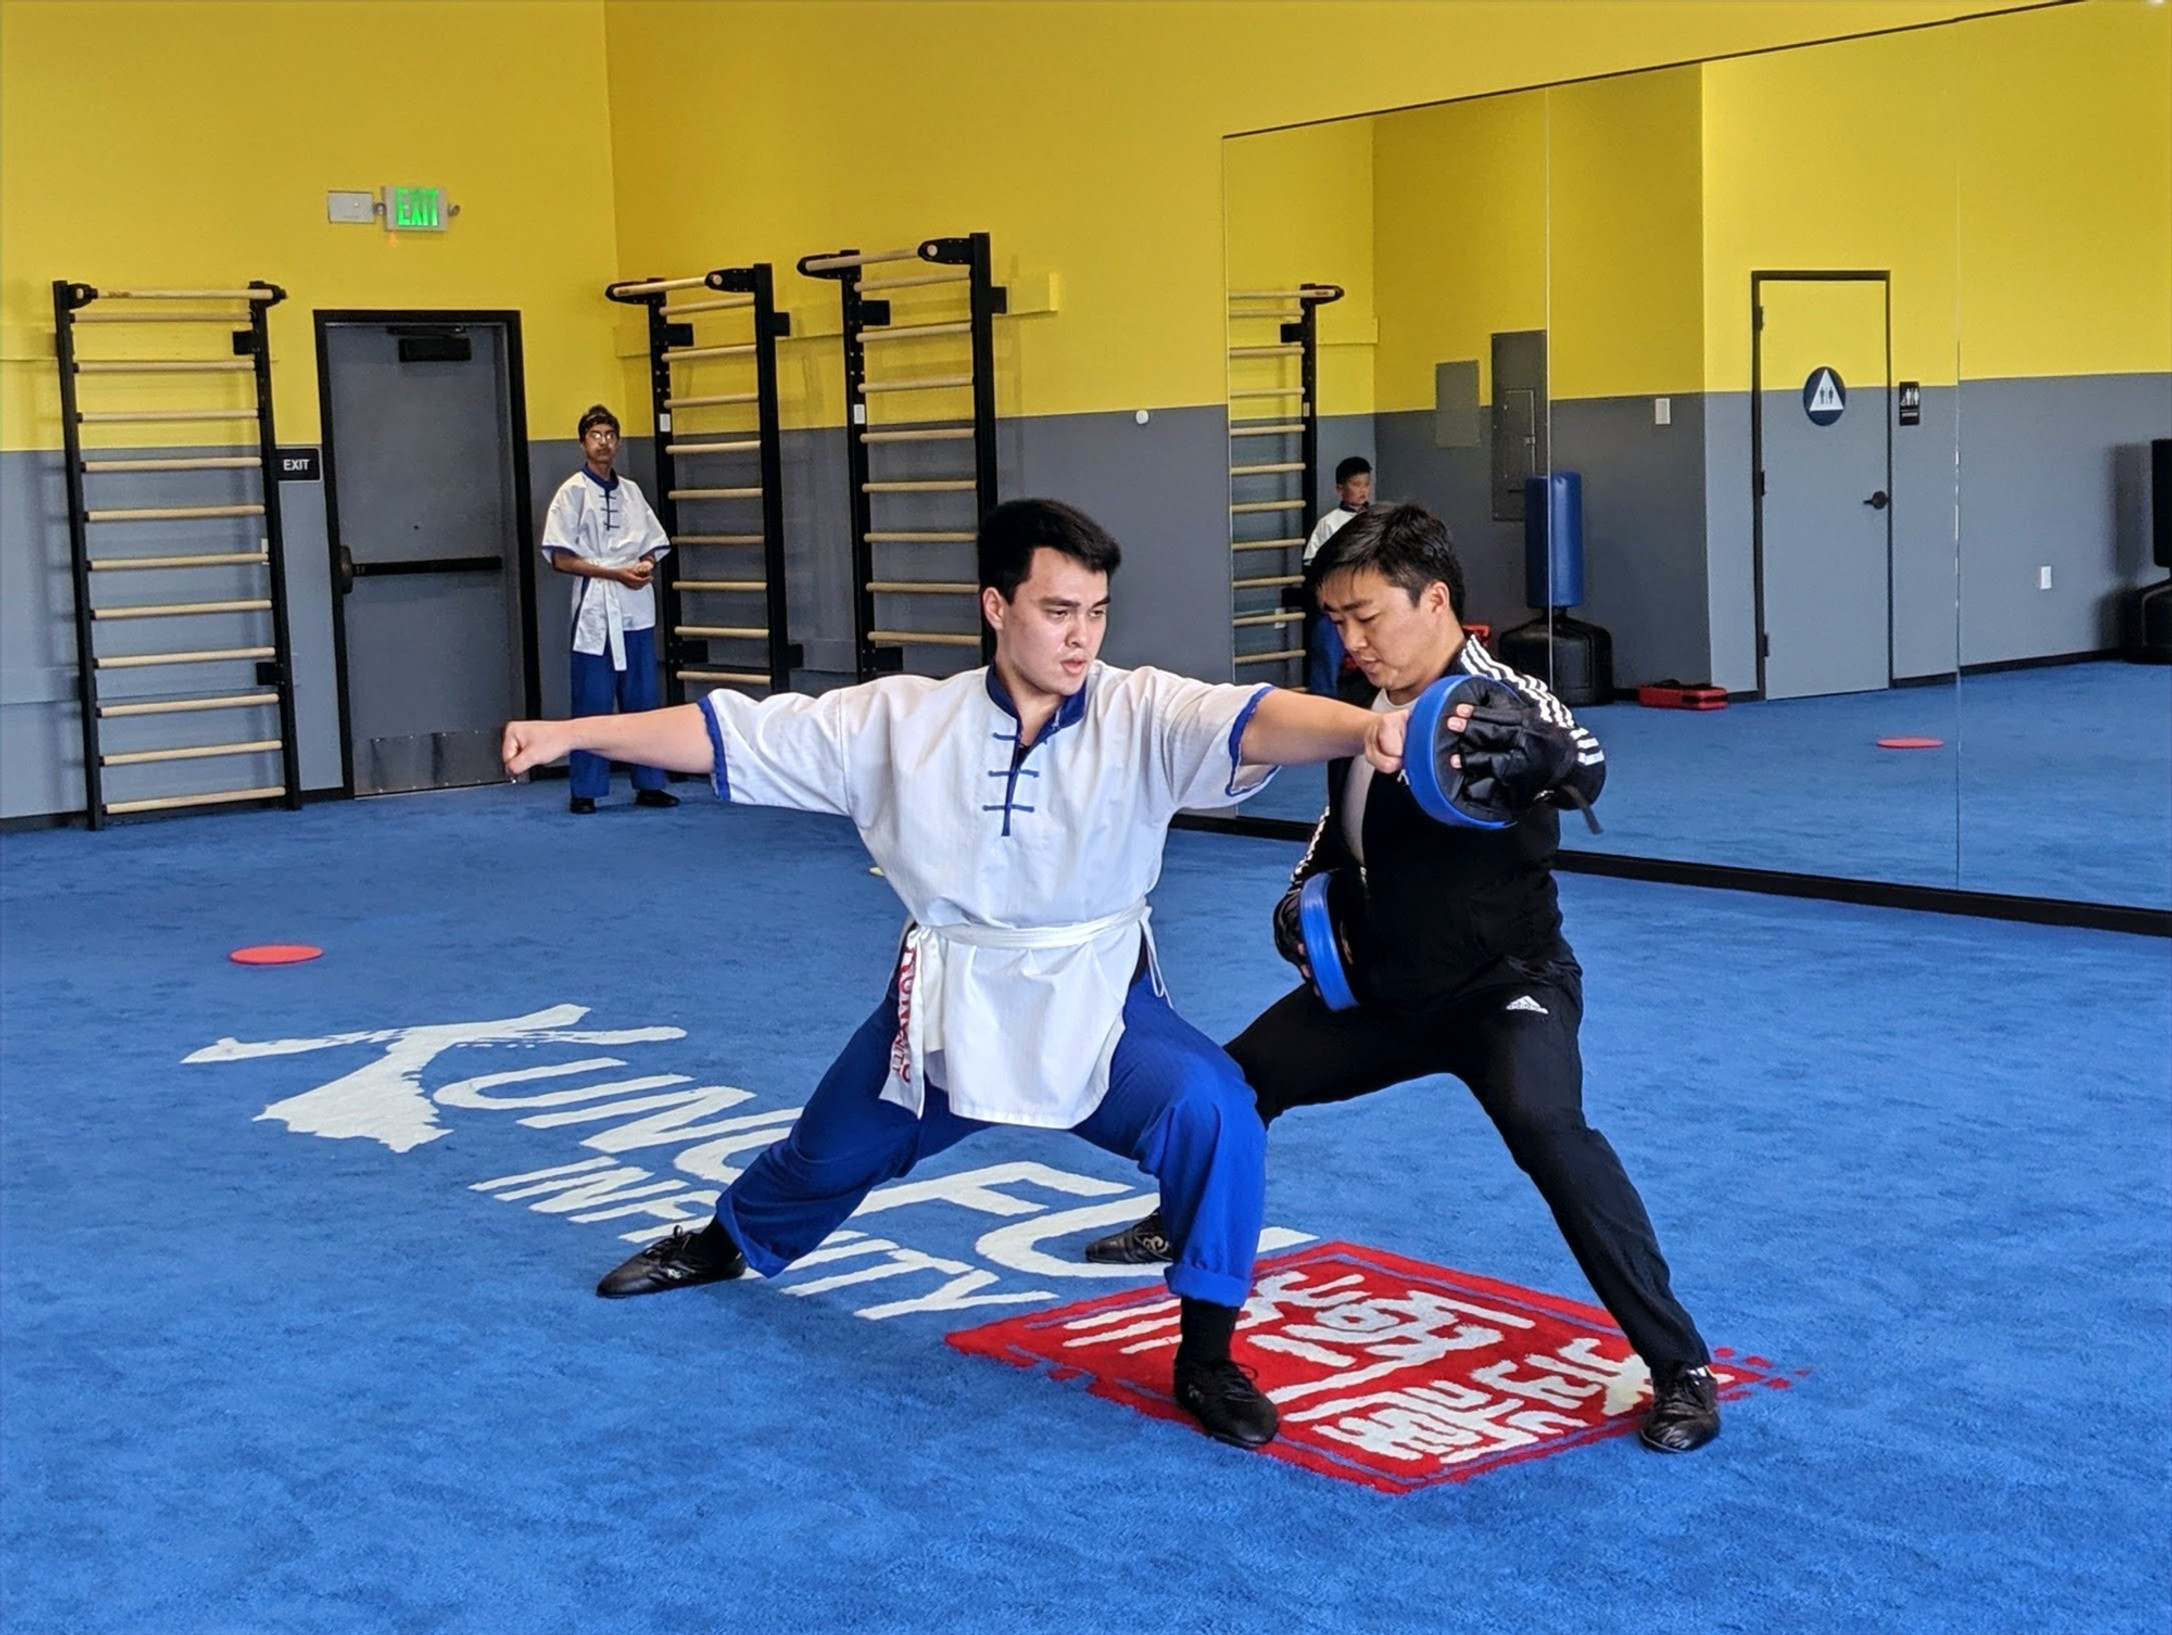 Teen/Adult (age 14+) Free Trial Class